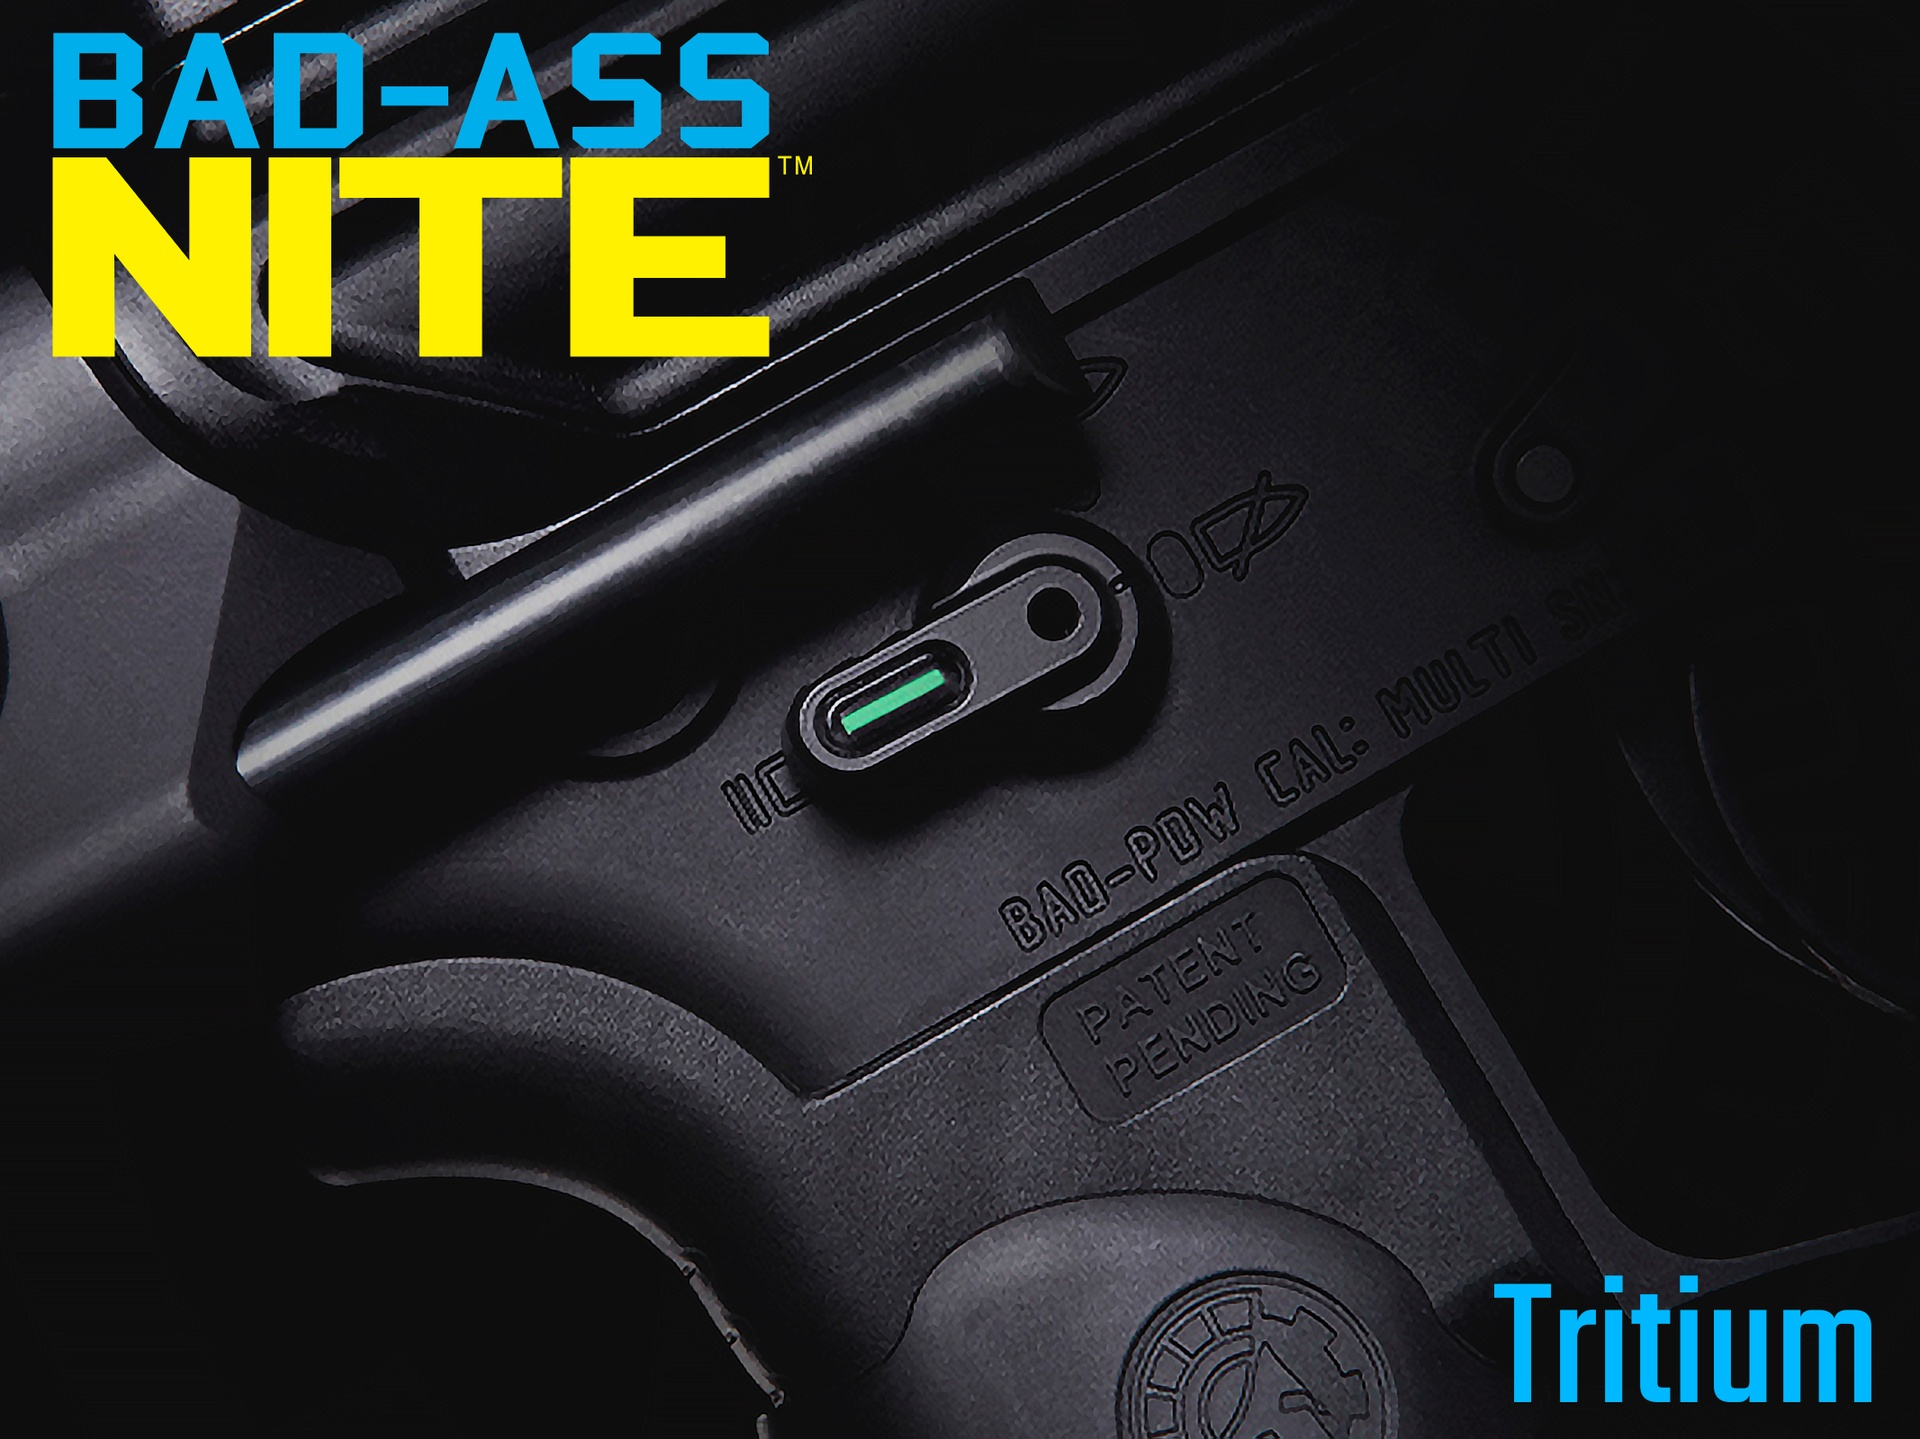 BAD-ASS Nite Ambidextrous Safety Selector - Tritium